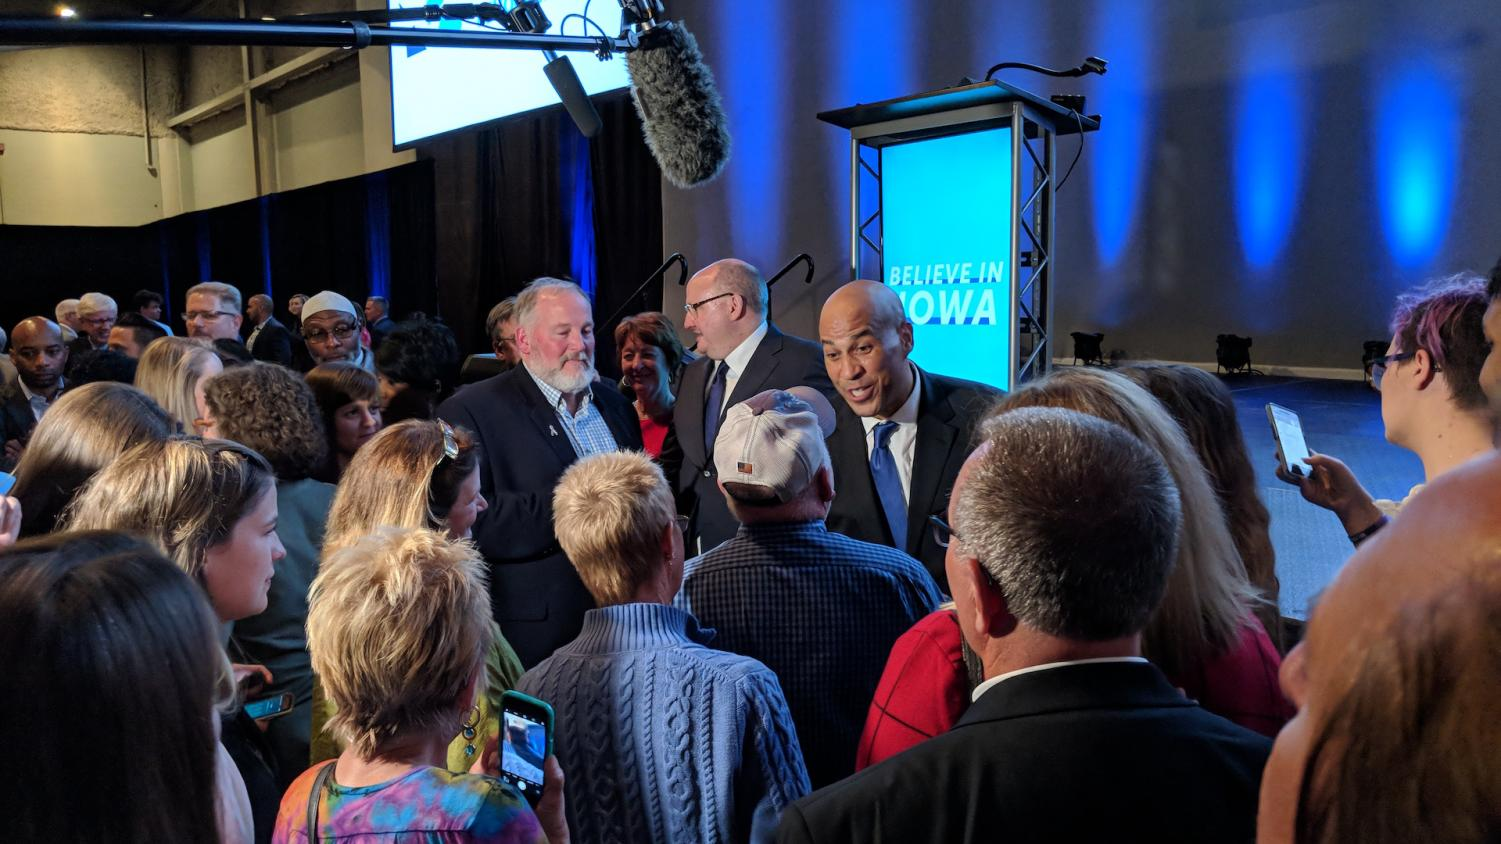 Sen. Cory Booker, D-N.J., interacts with the crowd at the Iowa Democratic Party's fall gala at HyVee Hall in Des Moines on Saturday, Oct. 6, 2018.  There is speculation that Booker will launch a 2020 presidential campaign, though he has not announced plans to do so yet.